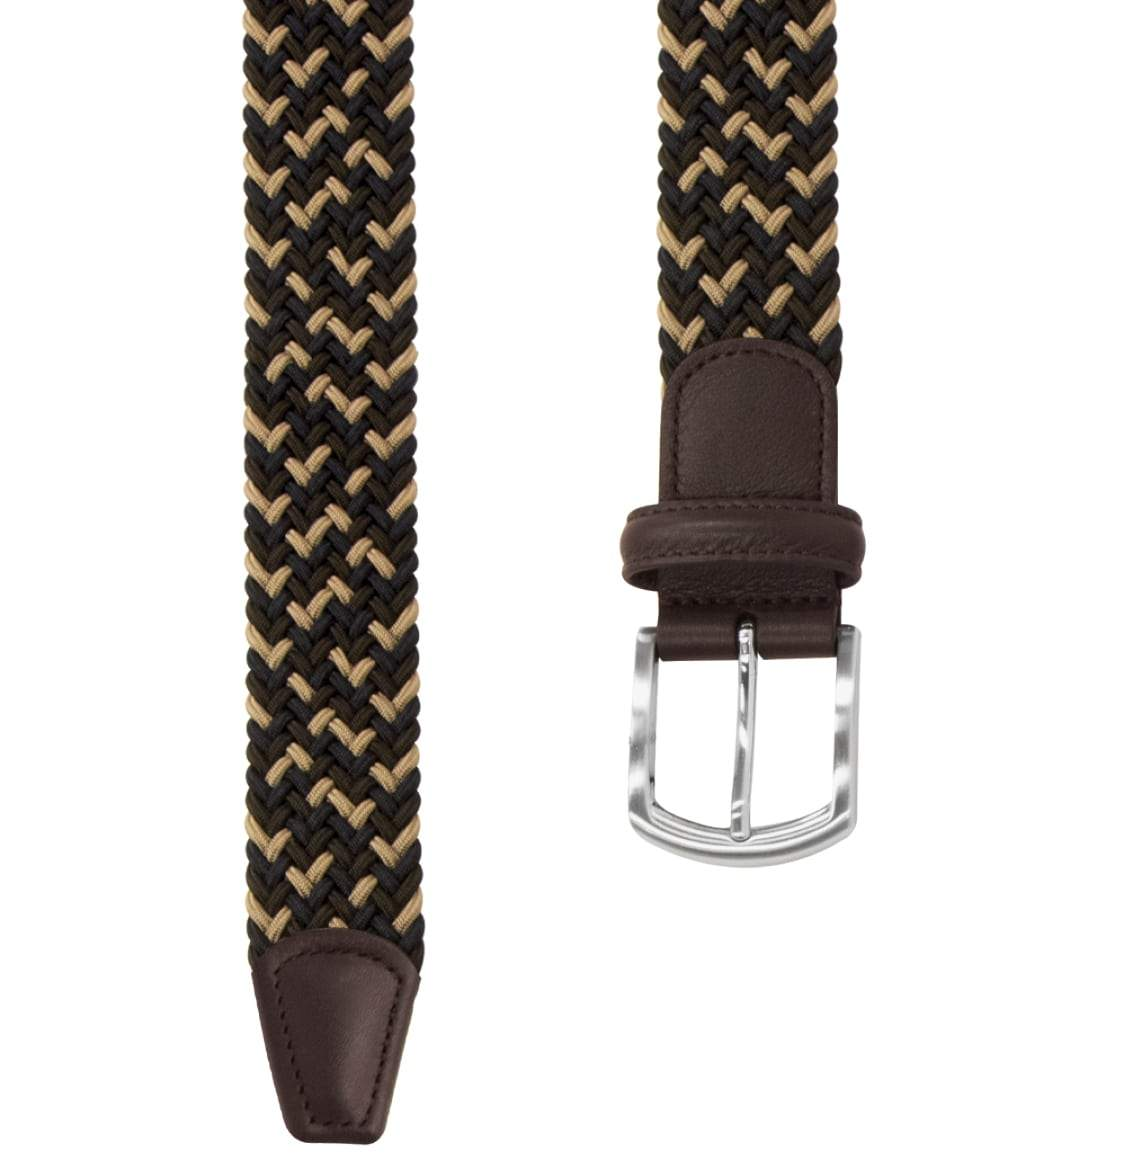 Anderson's Leather-Trimmed Multi Woven Belt Brown and Blue